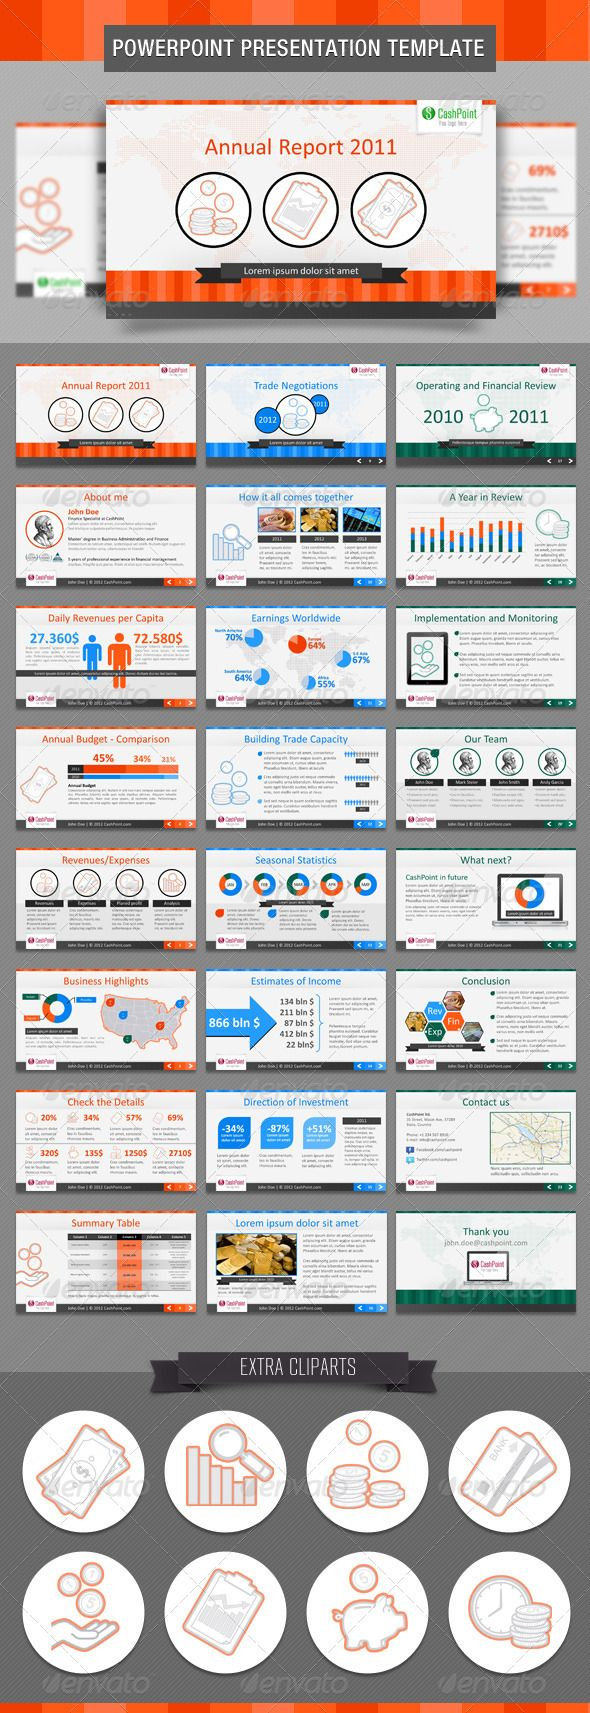 121 best corporate presentations images on pinterest, Presentation templates